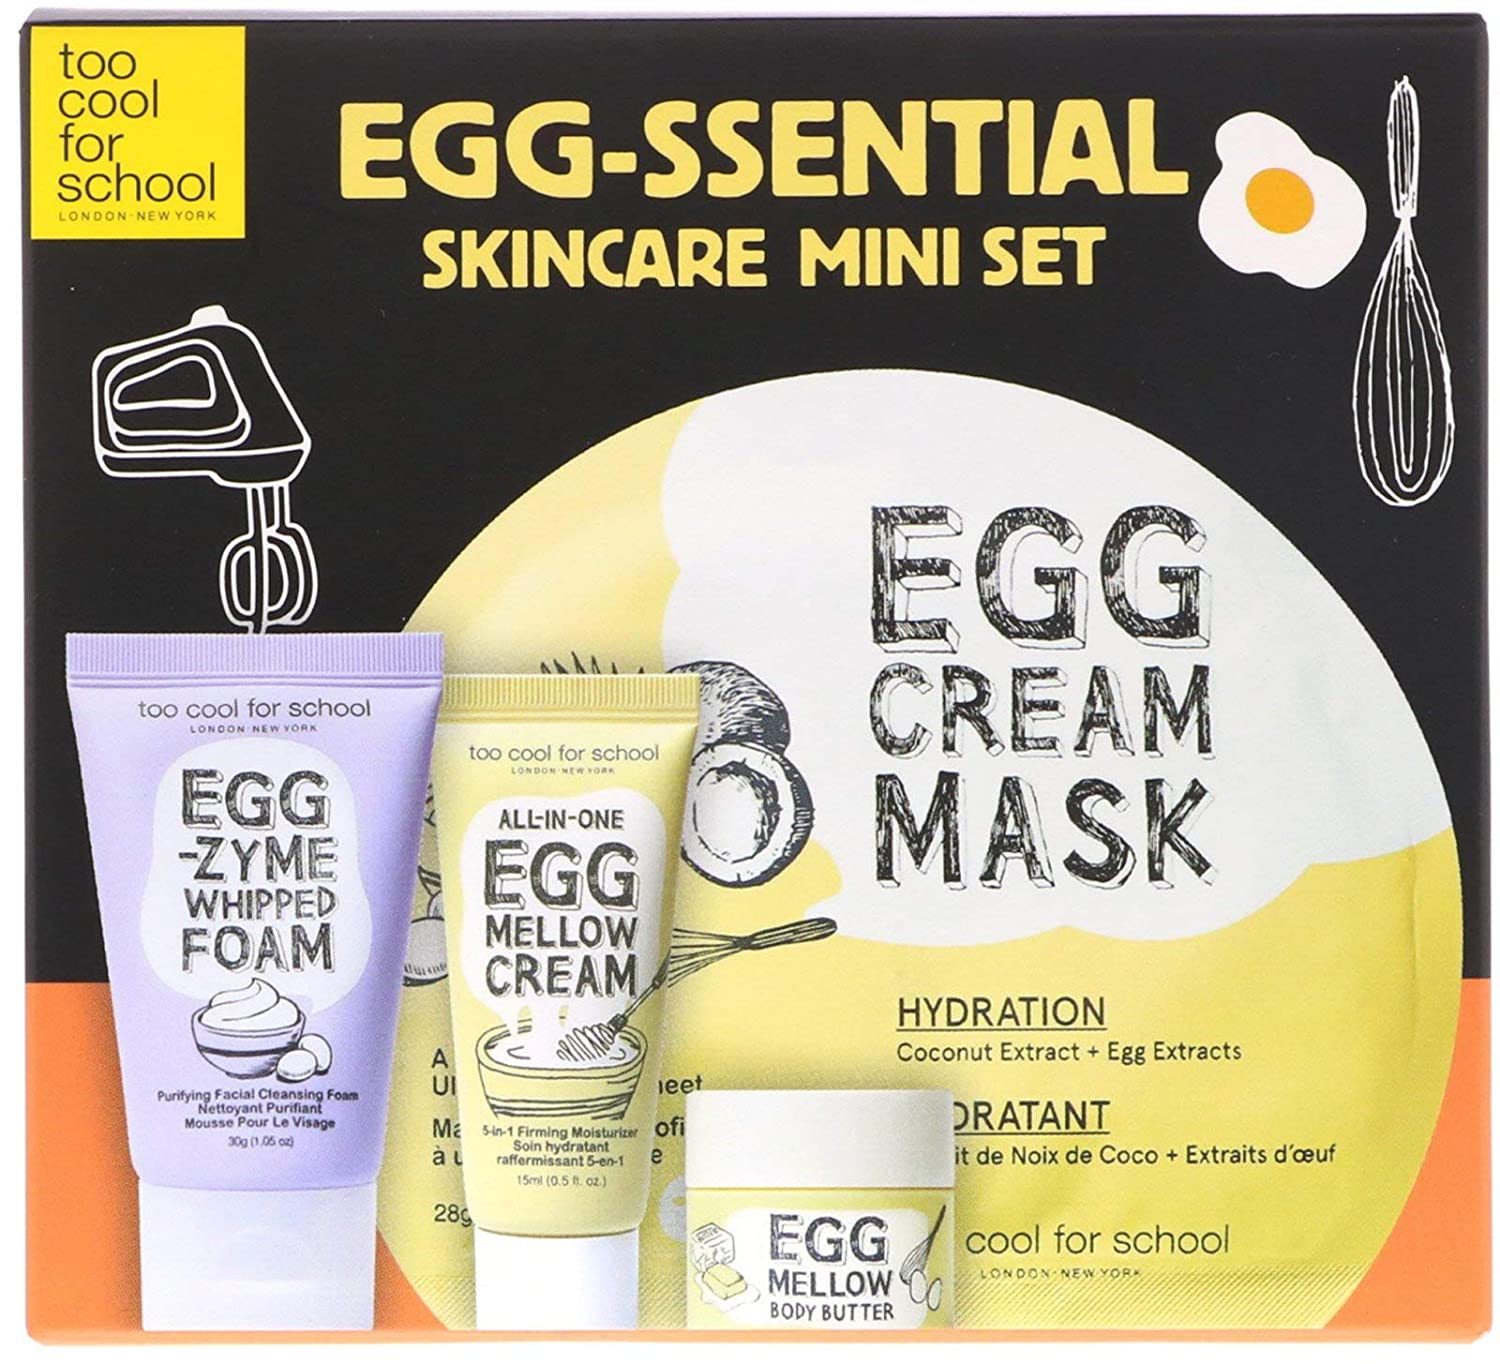 Too Cool for School Egg-ssential Skincare Mini Set 4 Piece Set - travel-size, facial cleanser, hydrating mask, moisturizer